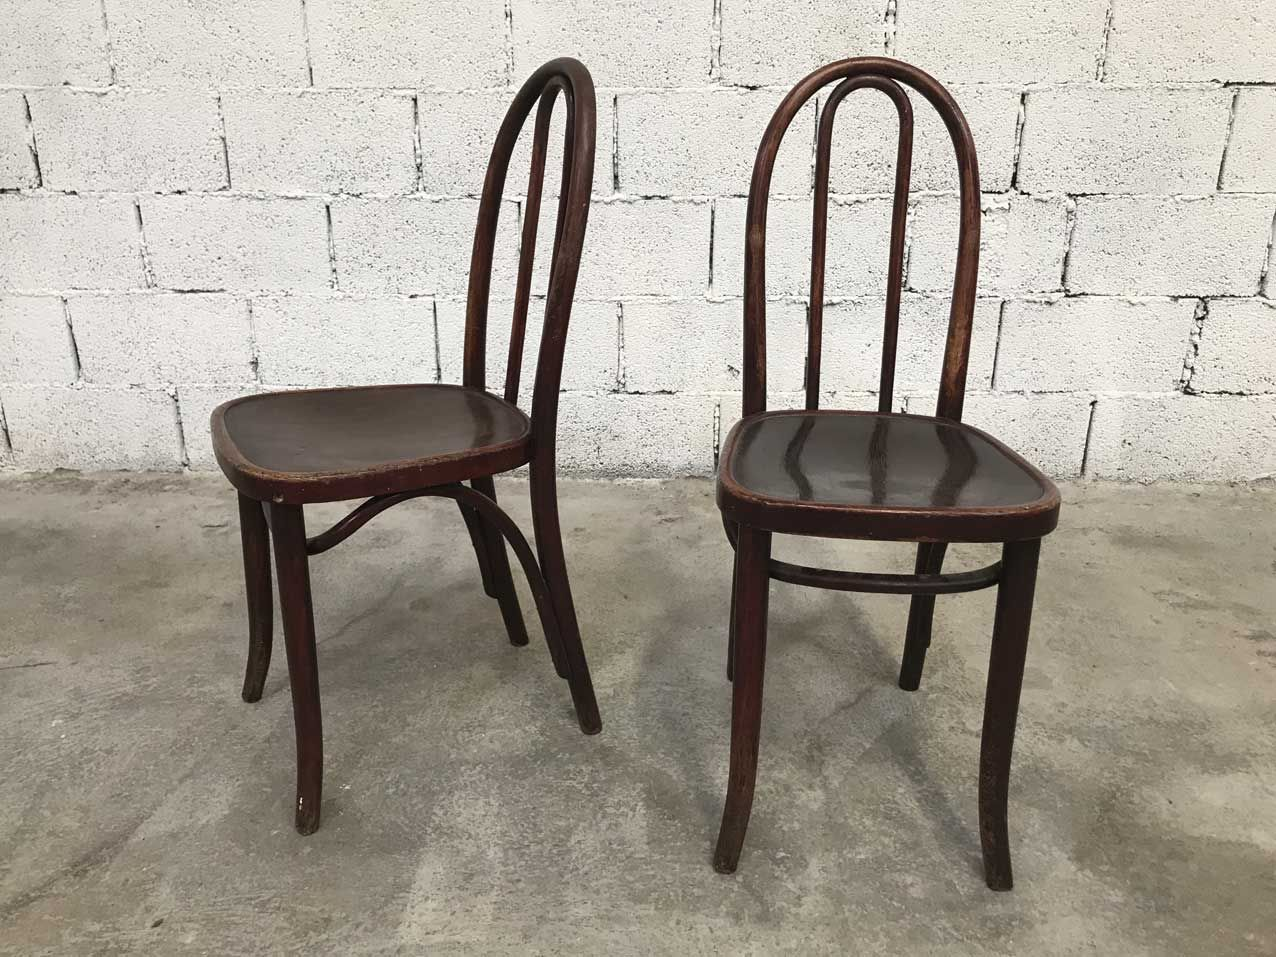 Cafe Chairs For Sale Vintage Bistro Chairs From Thonet Set Of 6 For Sale At Pamono